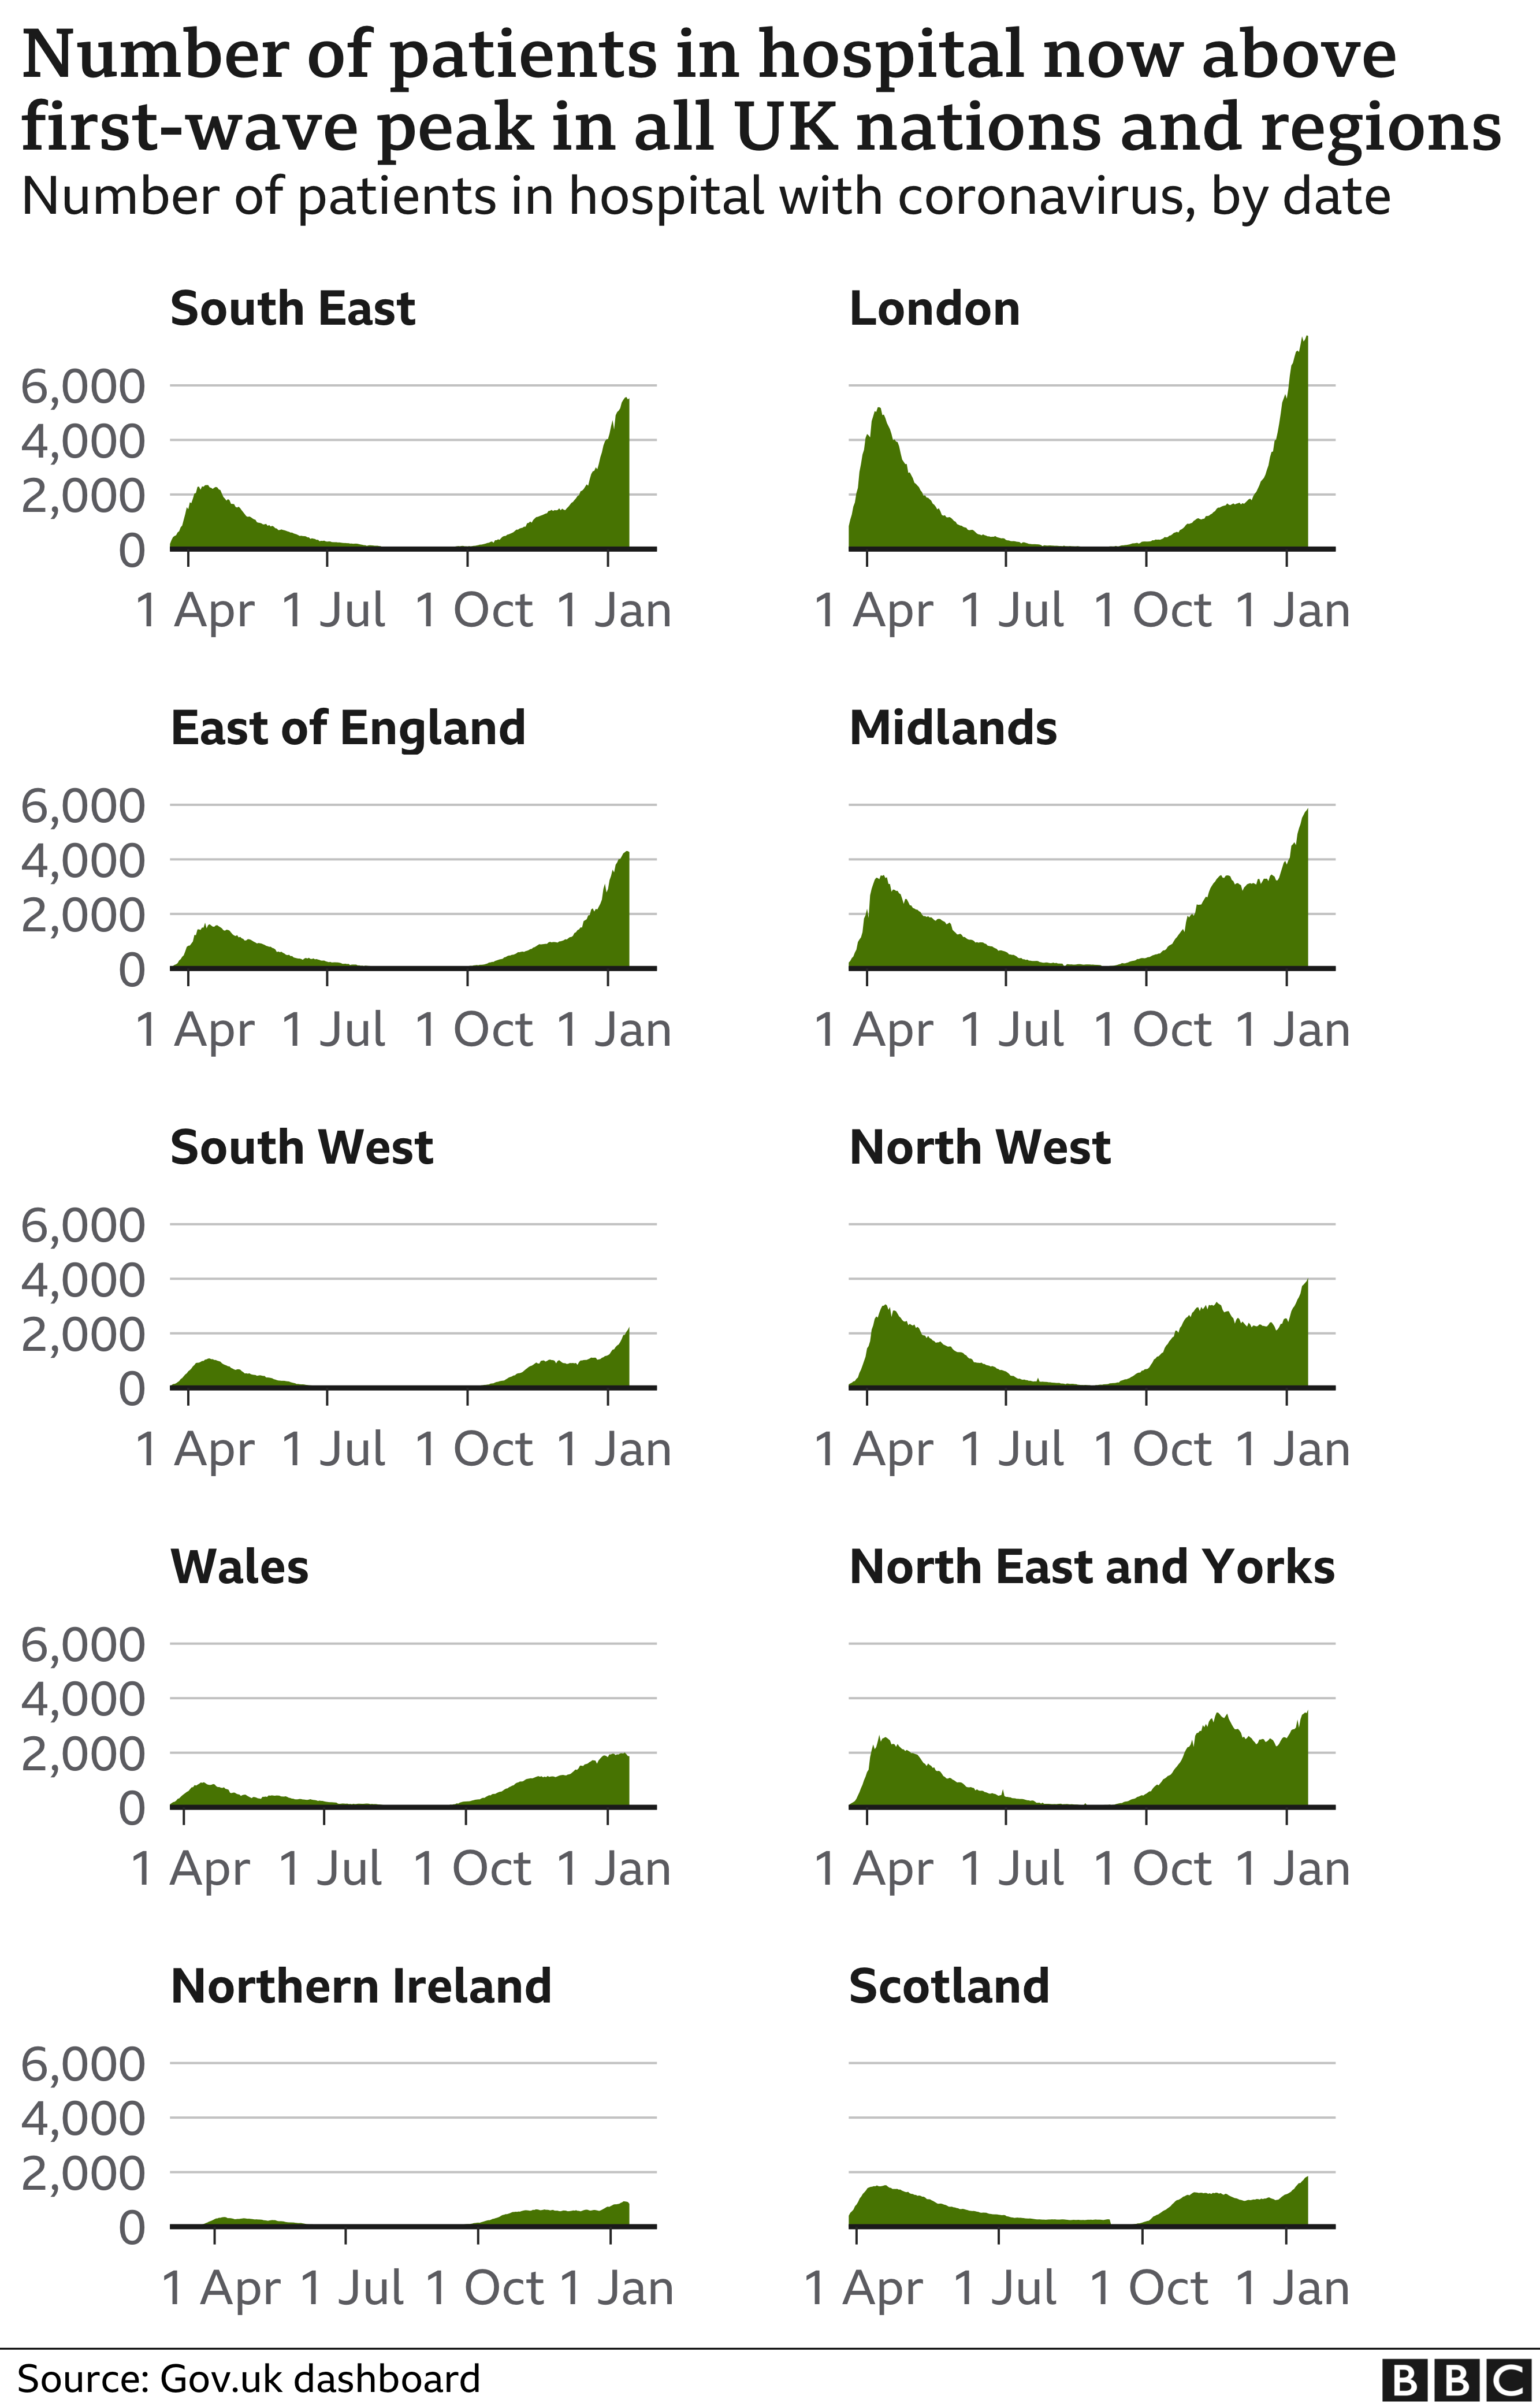 Chart showing the number of patients in hospital in the nations and regions of the UK